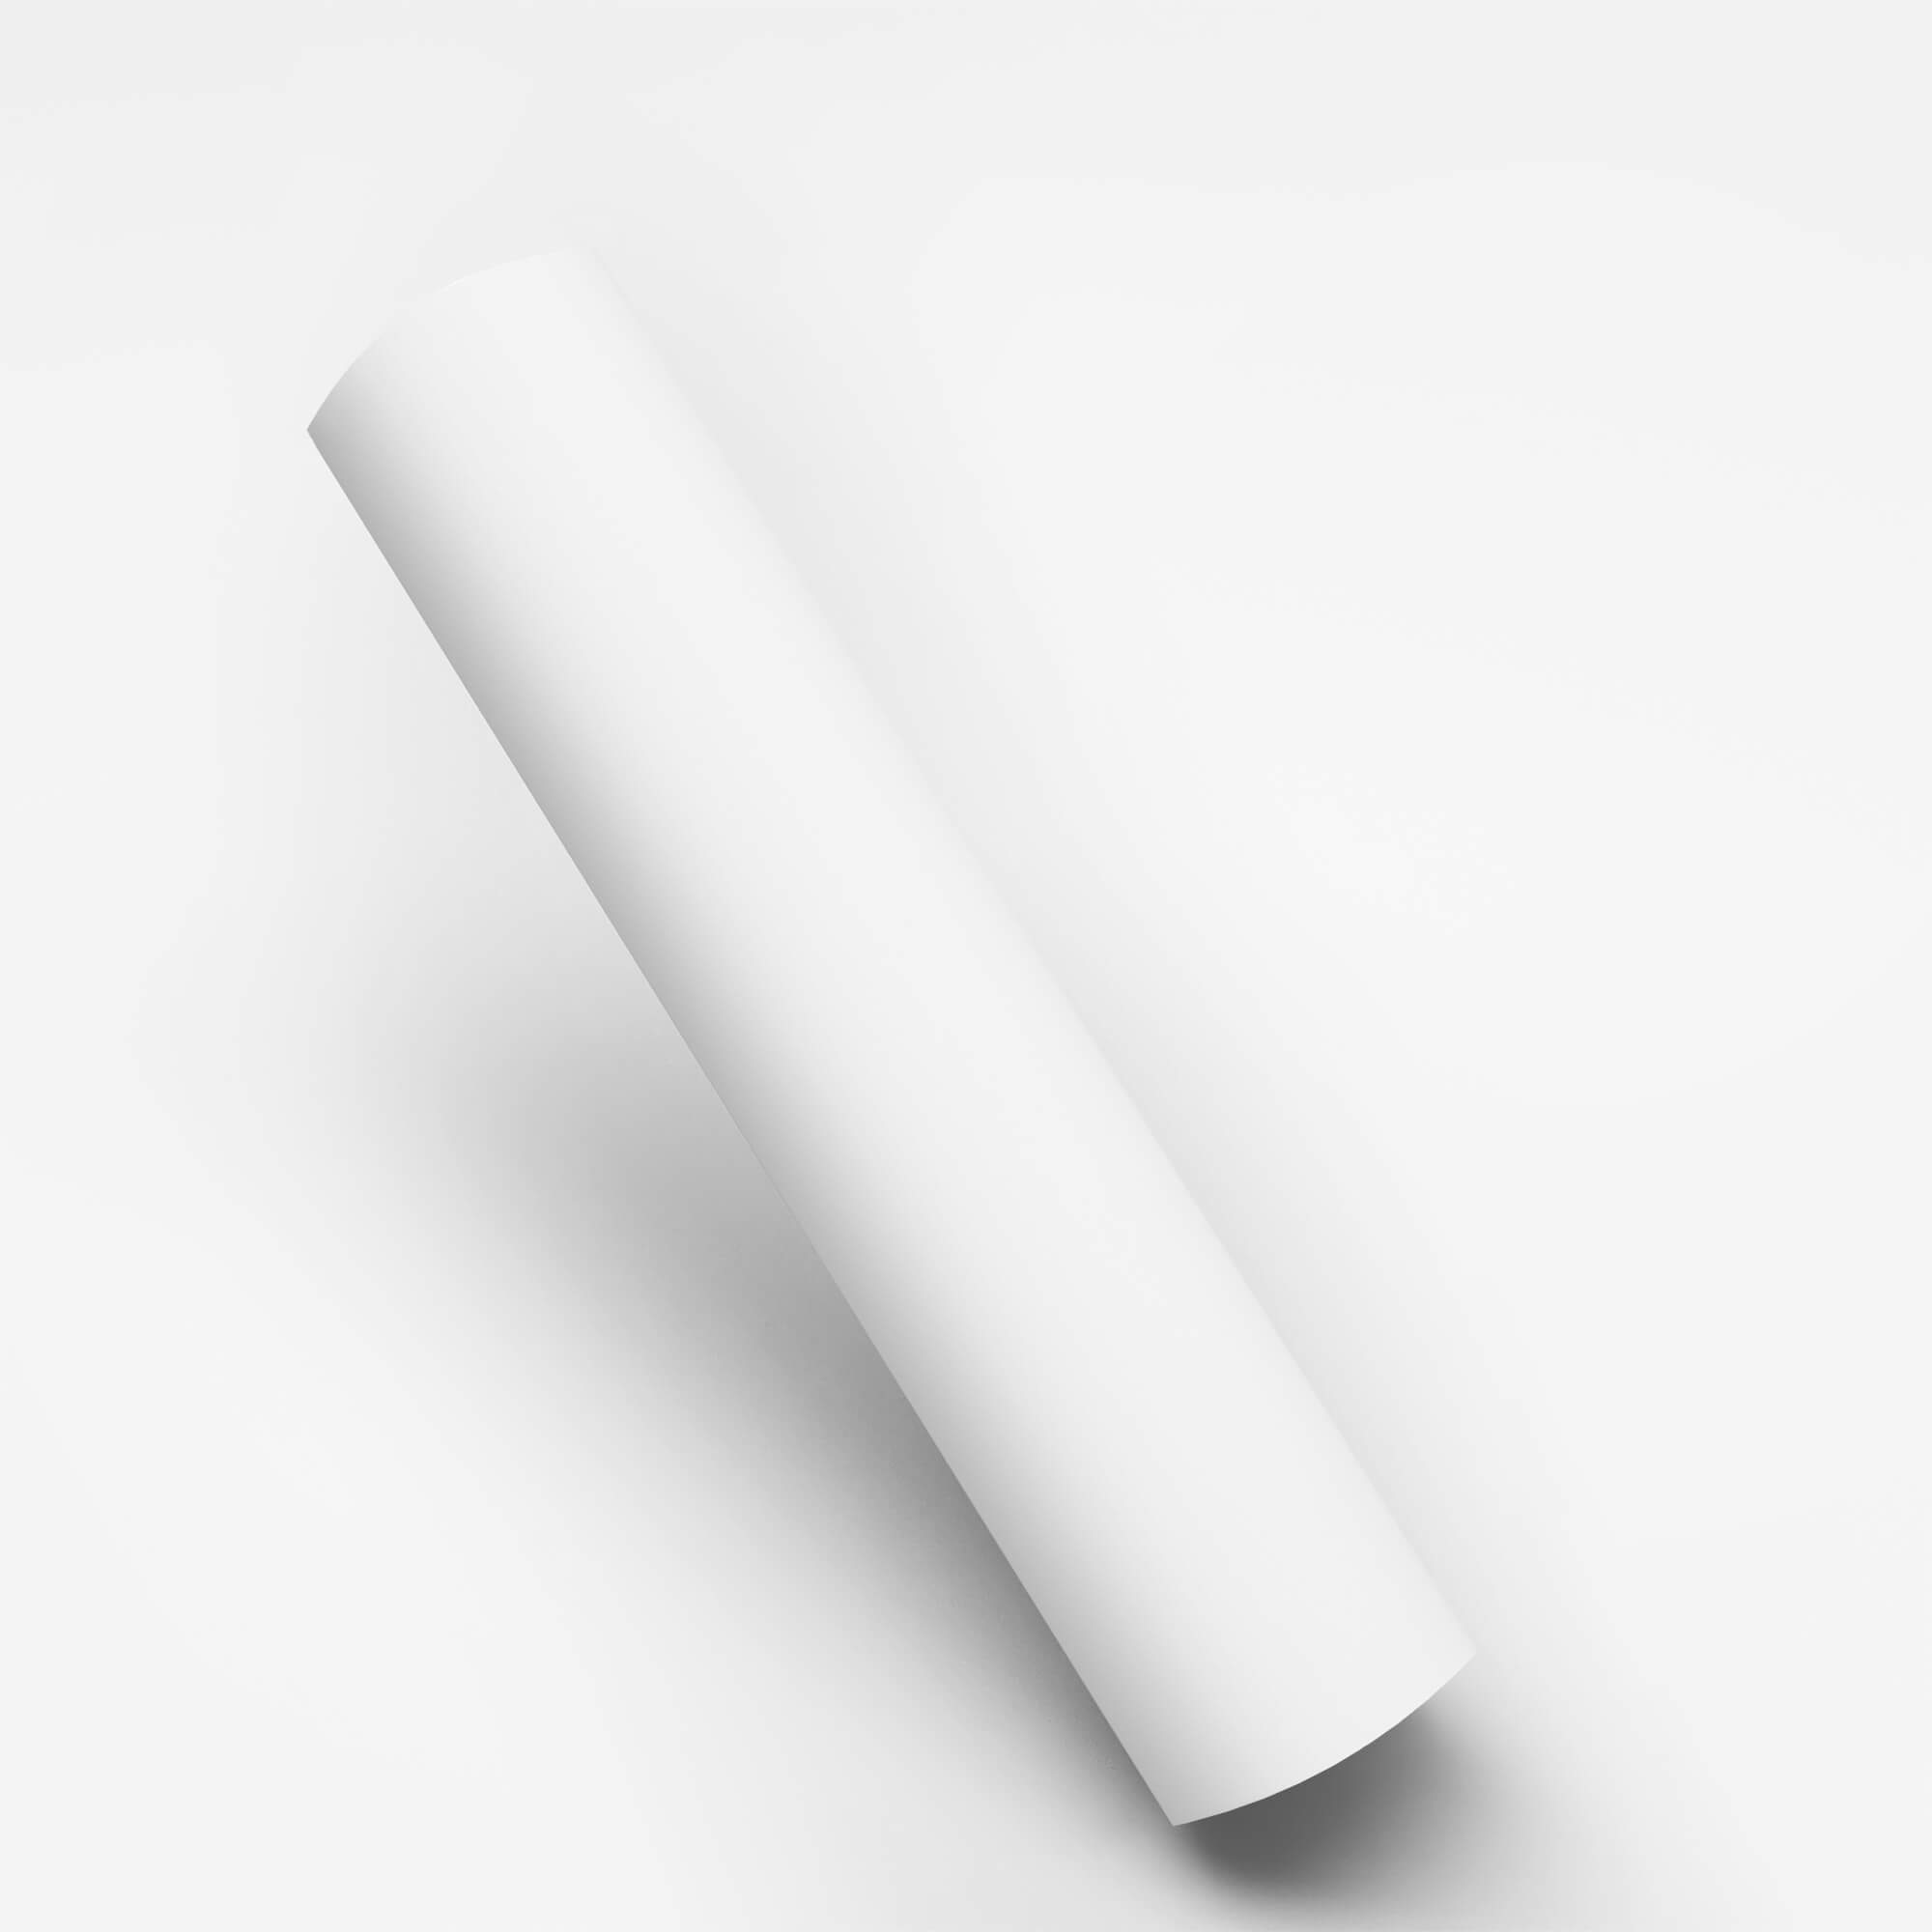 Blank Free Paper Roll Mockup PSD Template